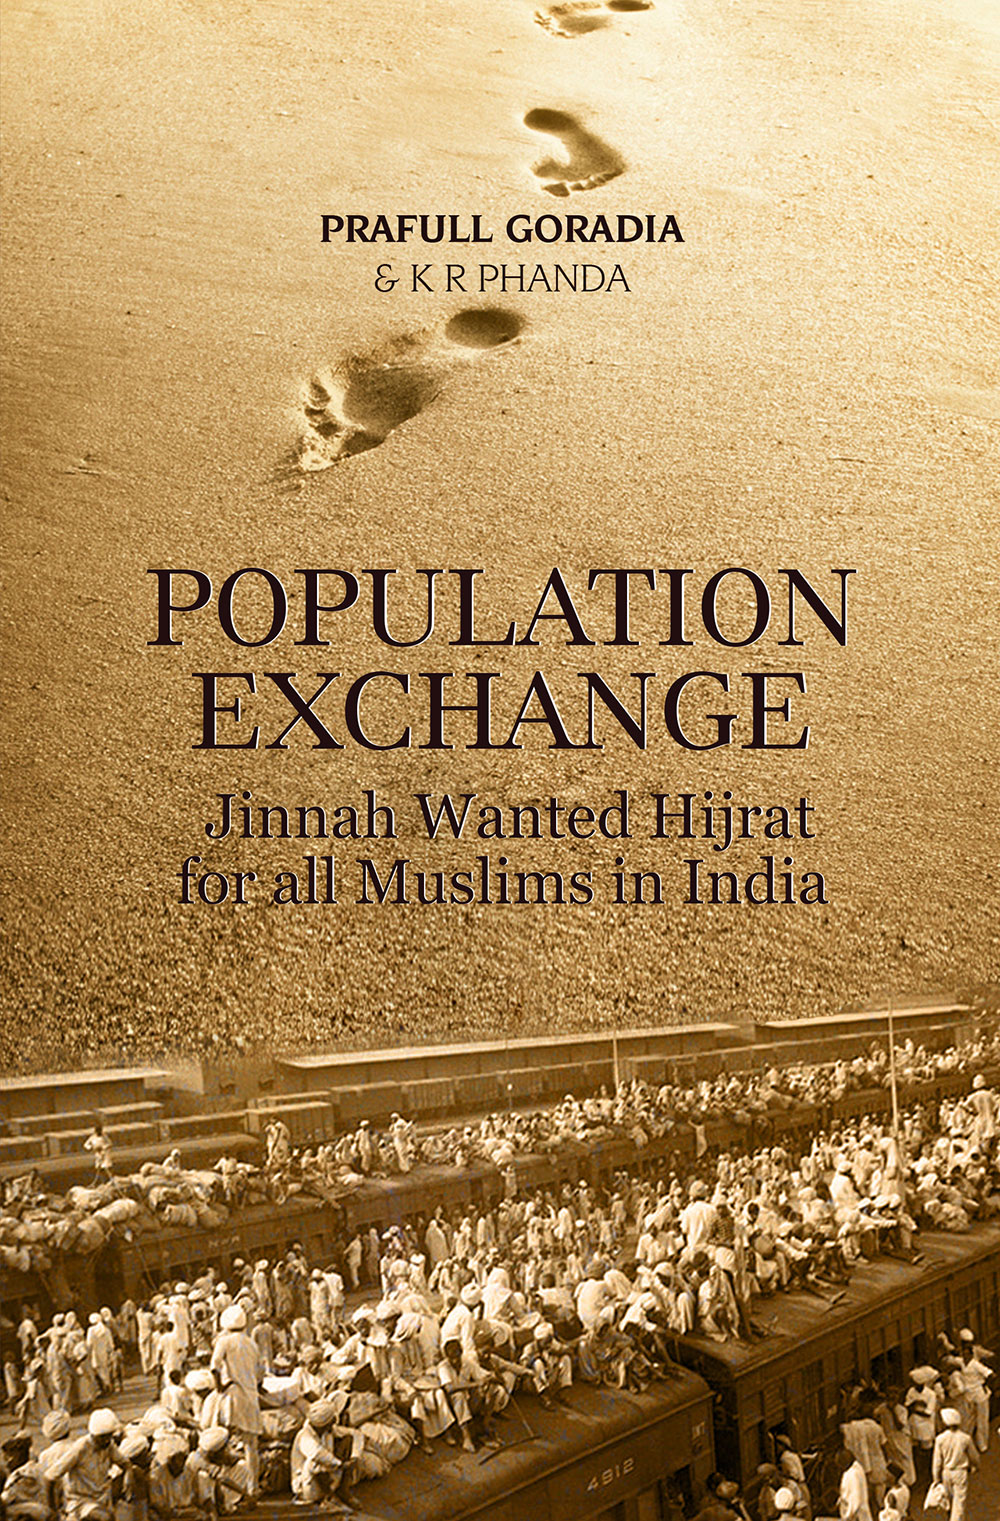 Population Exchange - Jinnah wanted Hijrat for all Muslims in India